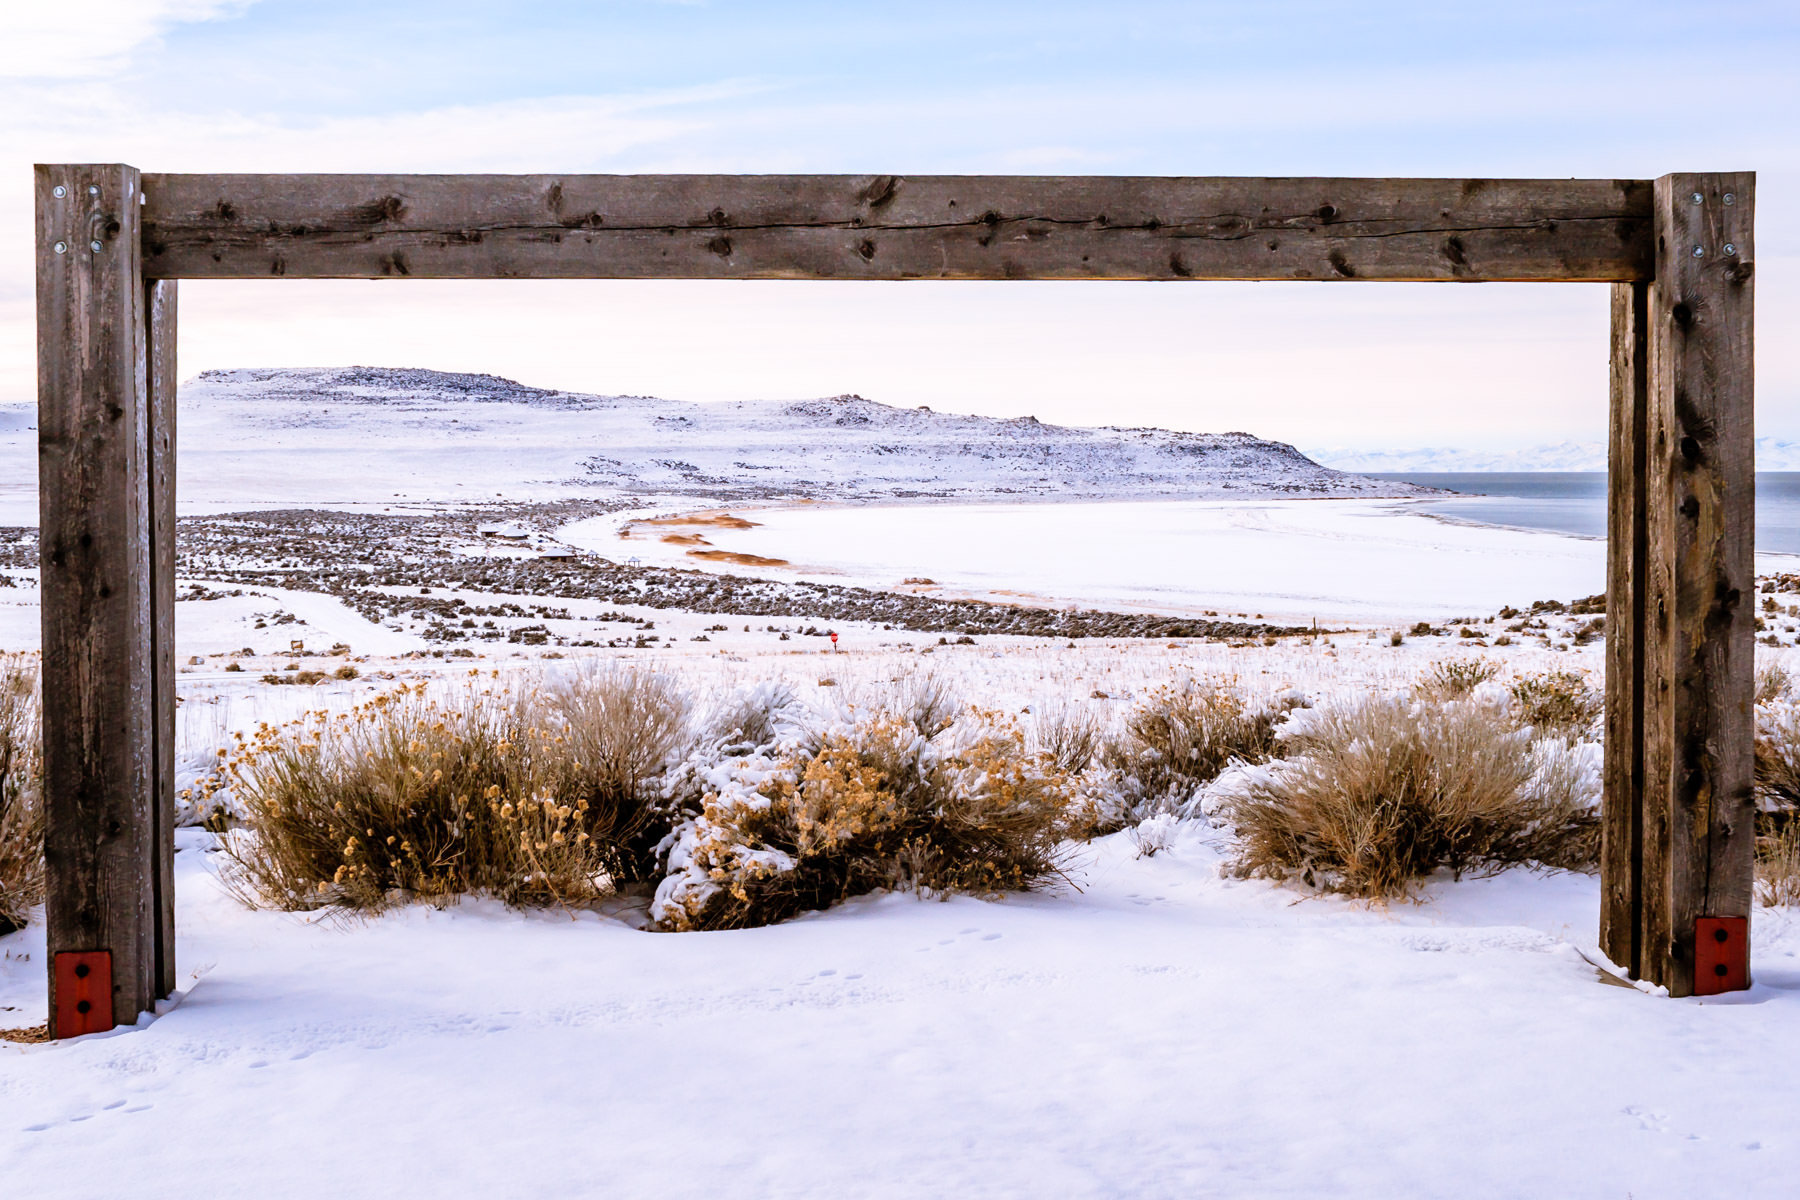 The outdoor amphitheatre at Utah's Antelope Island State Park boasts an impressive backdrop.